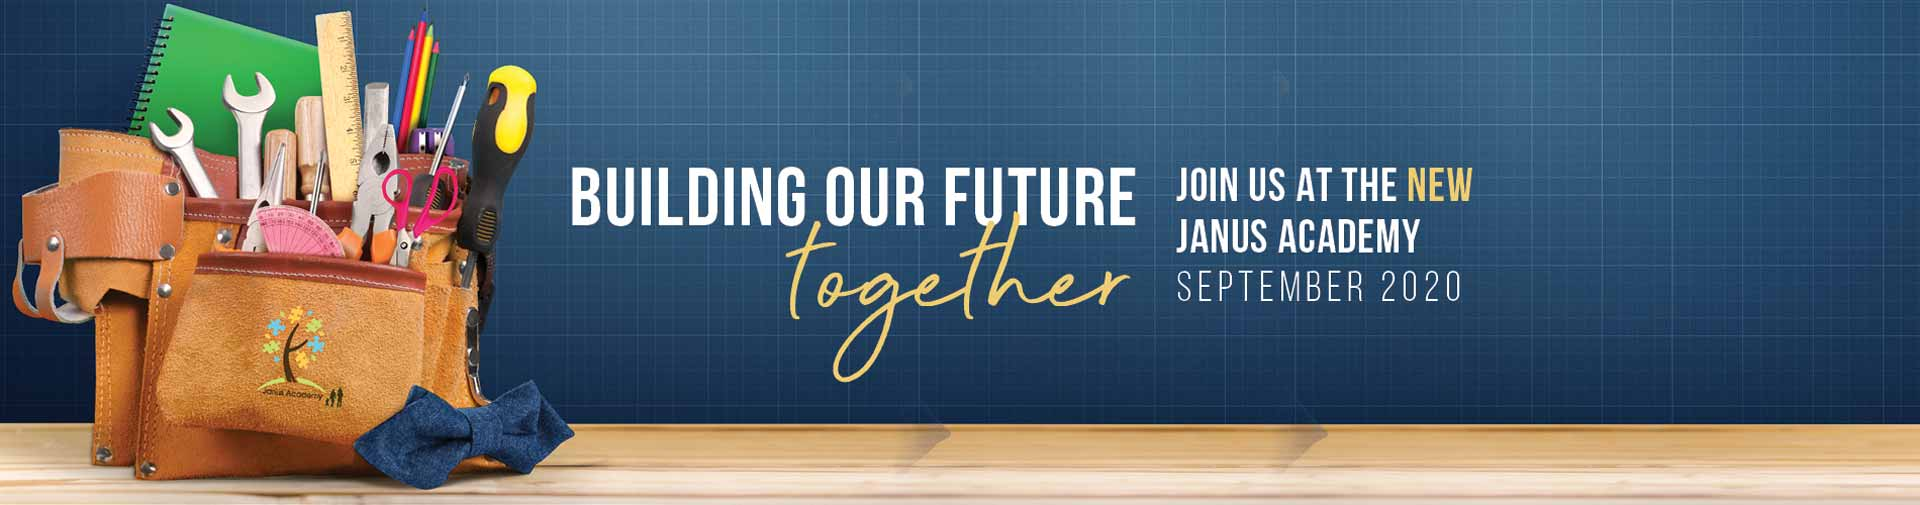 The New Janus Academy - Building Our Future Together